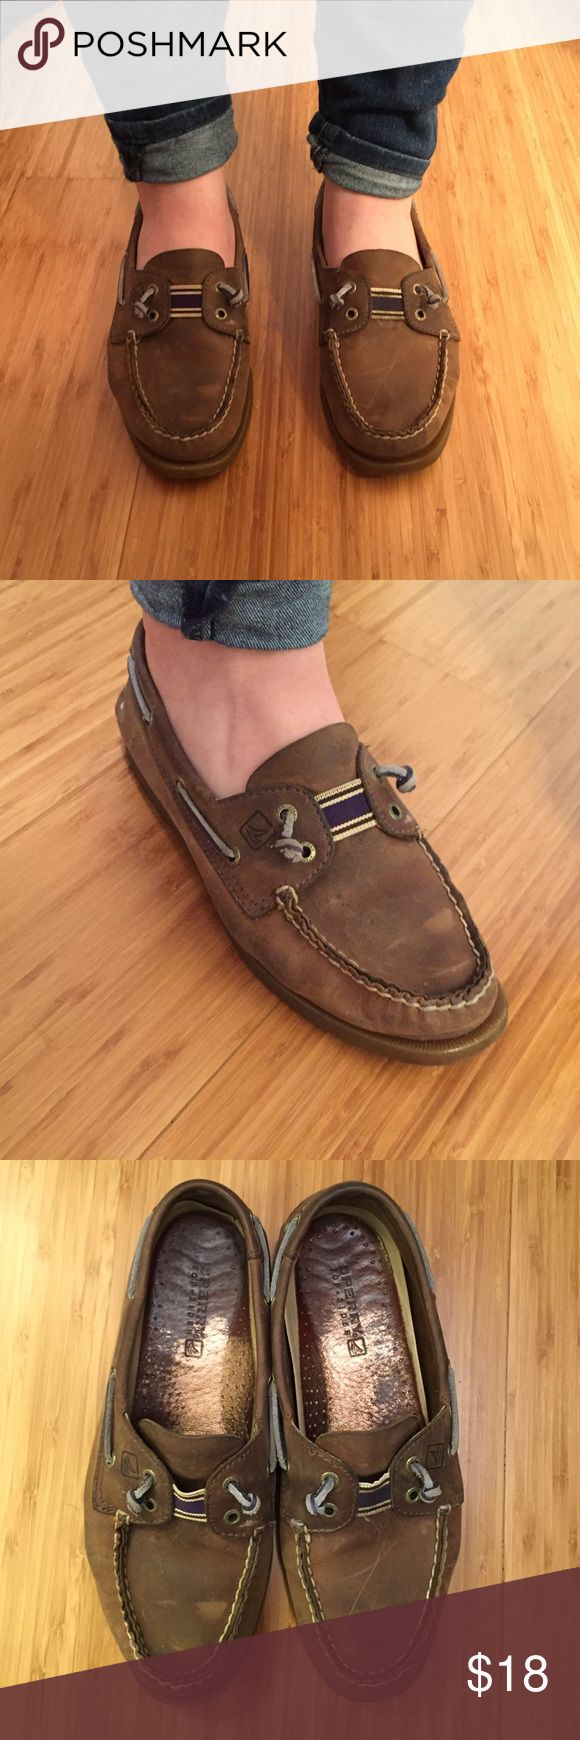 ☀reduced ☀️ Brown Sperry Topsiders Brown Sperry's. Very broken in and worn but still in great condition. No trades, please! Sperry Top-Sider Shoes Flats & Loafers